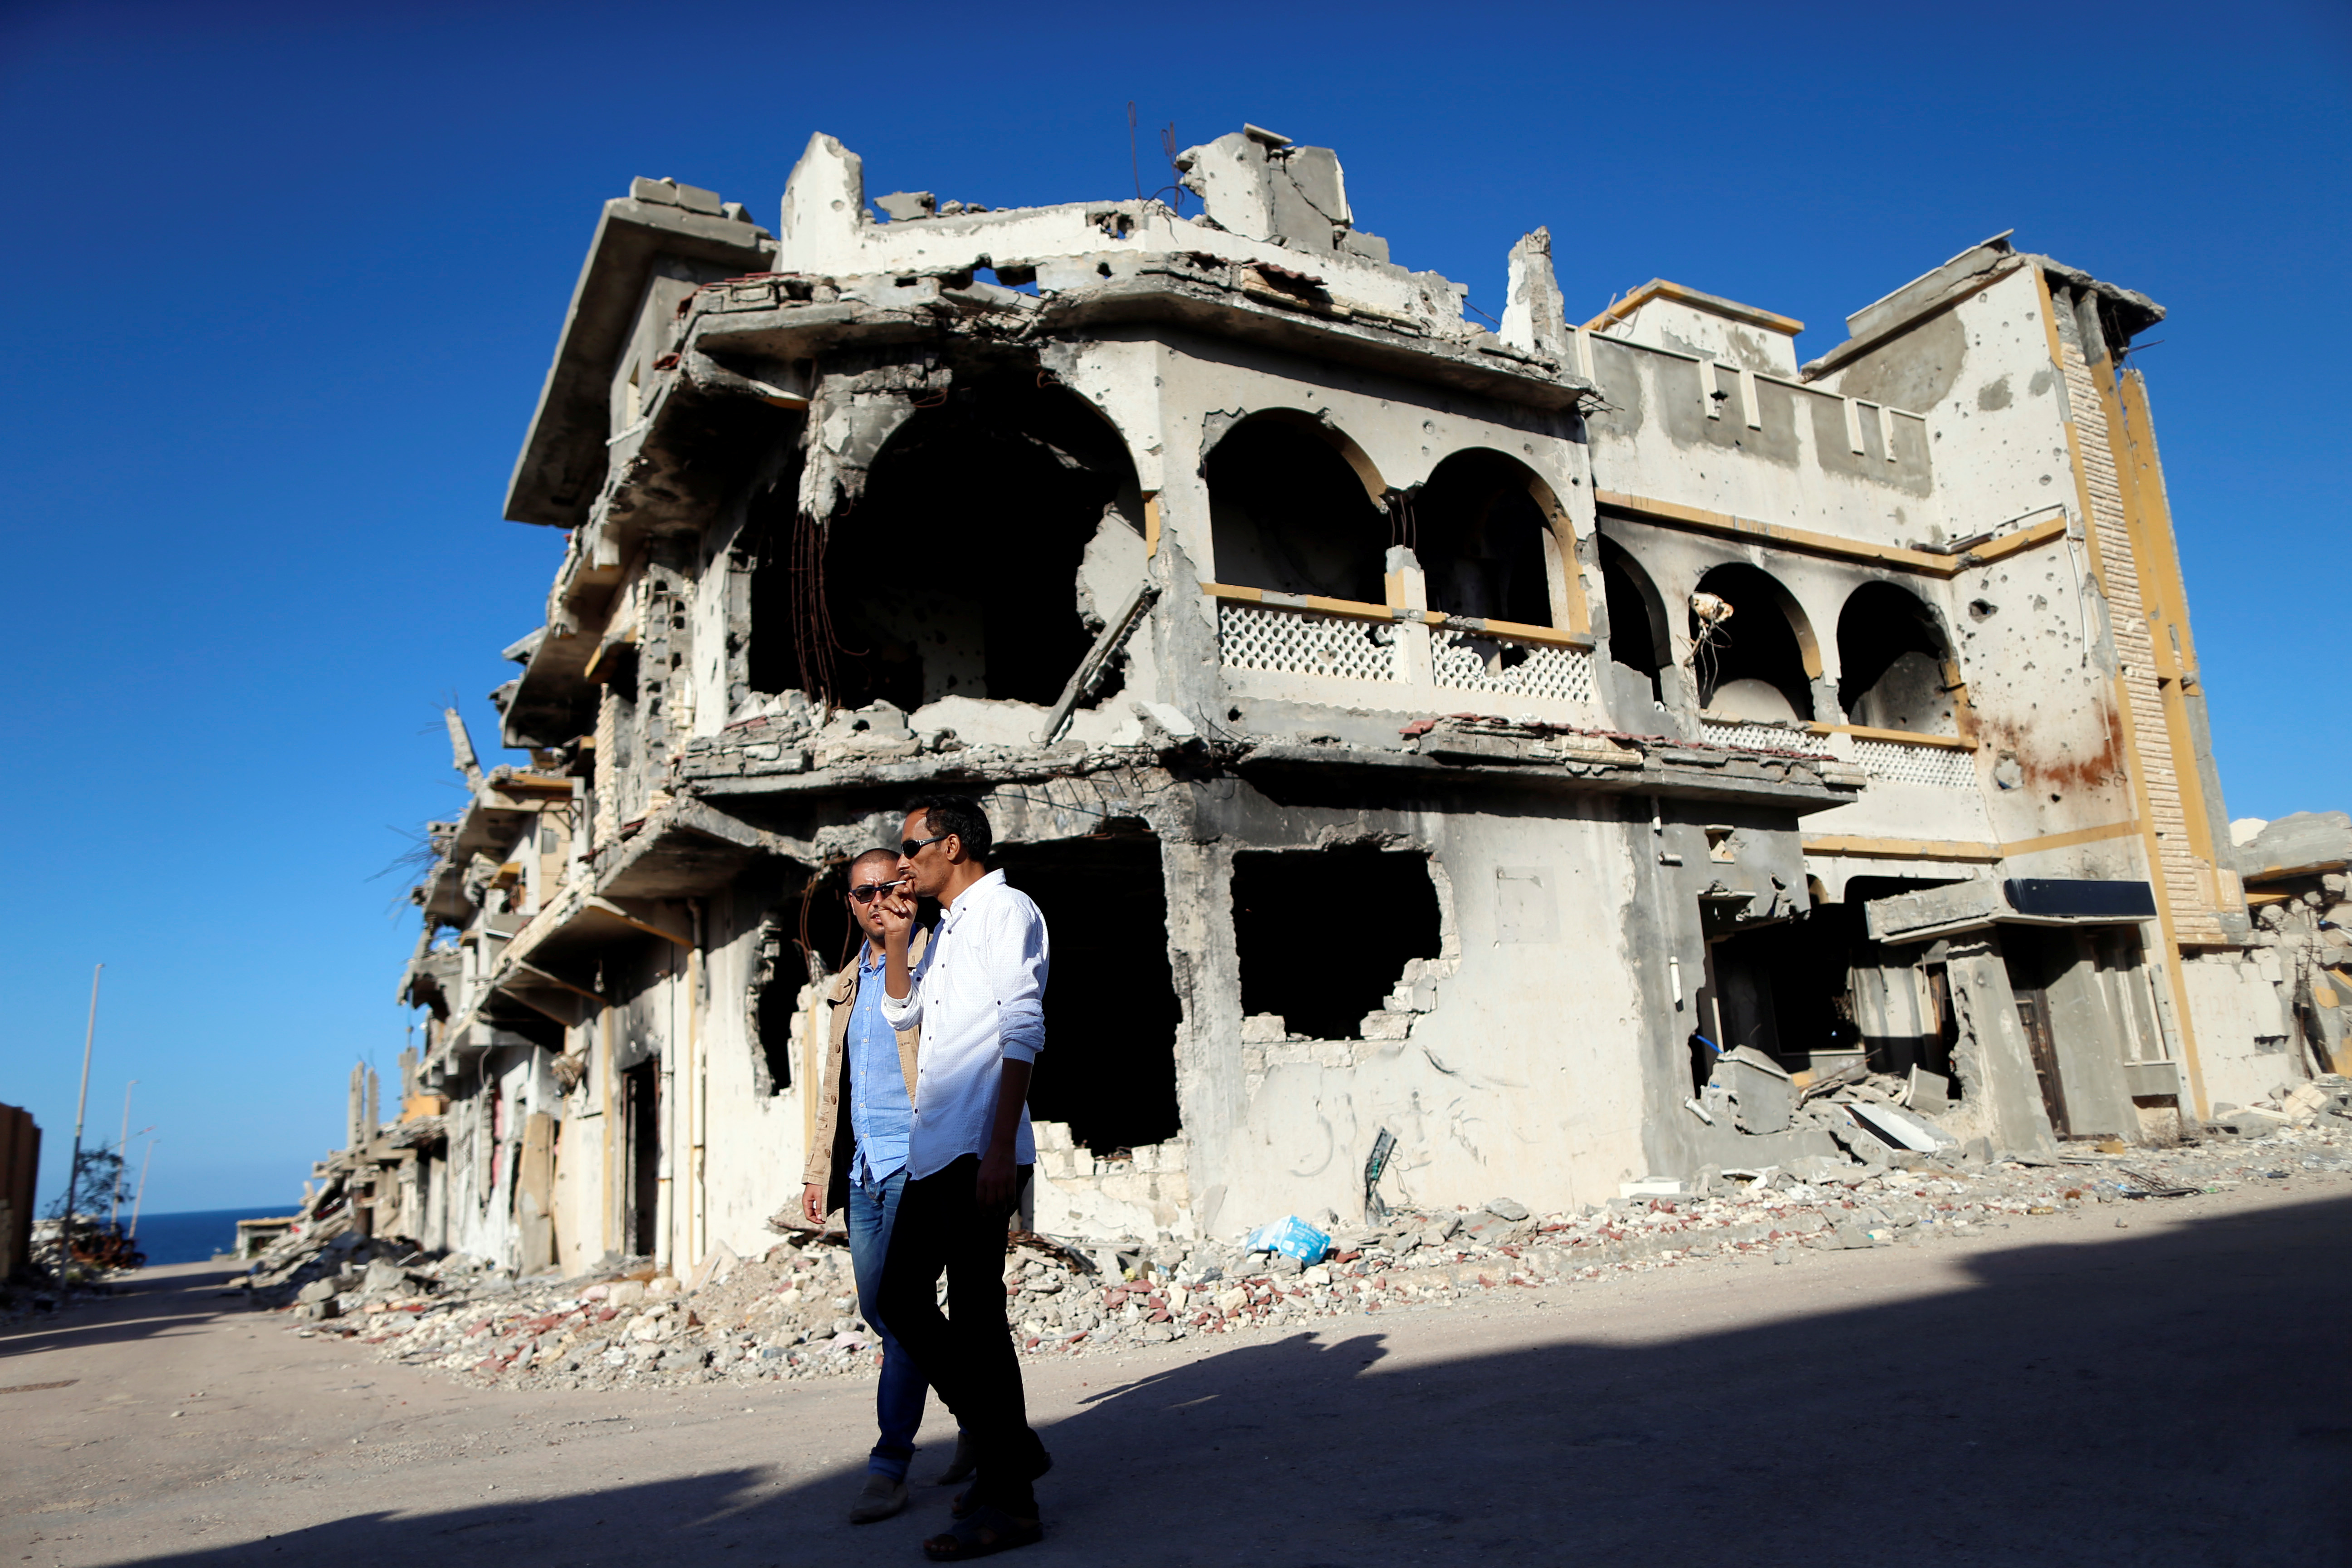 Men walk past the ruins of a building that was destroyed during clashes between Libyan forces and Islamic State militants, in Sirte, Libya, November 1, 2017. Picture taken November 1, 2017. REUTERS/Ahmed Jadallah - RC16BEF8E700